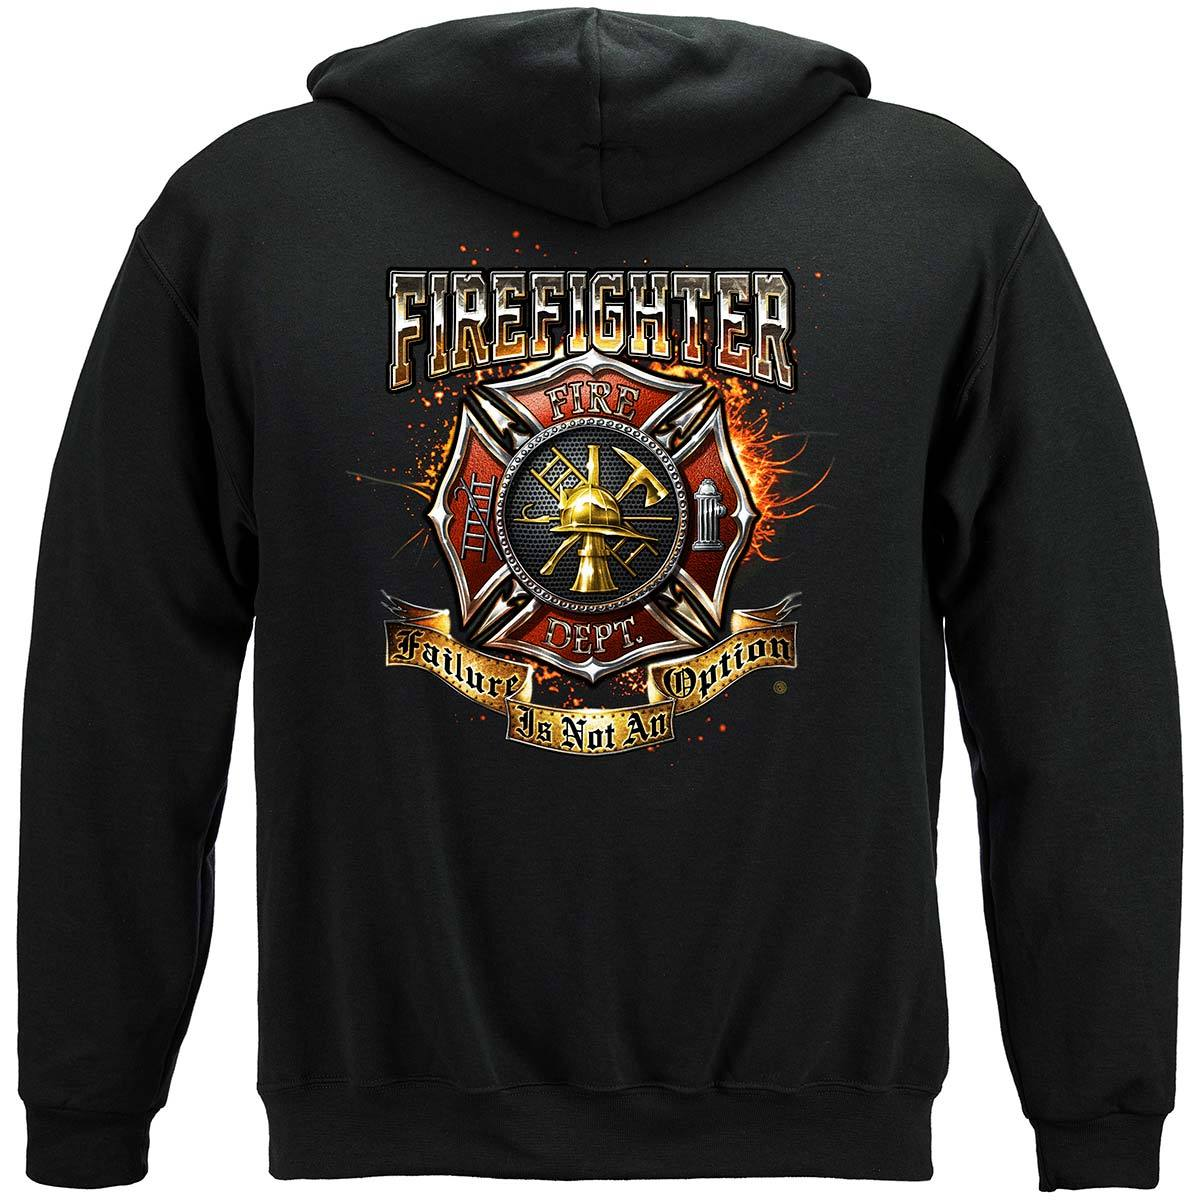 Firefighter Failure Is Not An Option Premium Hooded Sweat Shirt